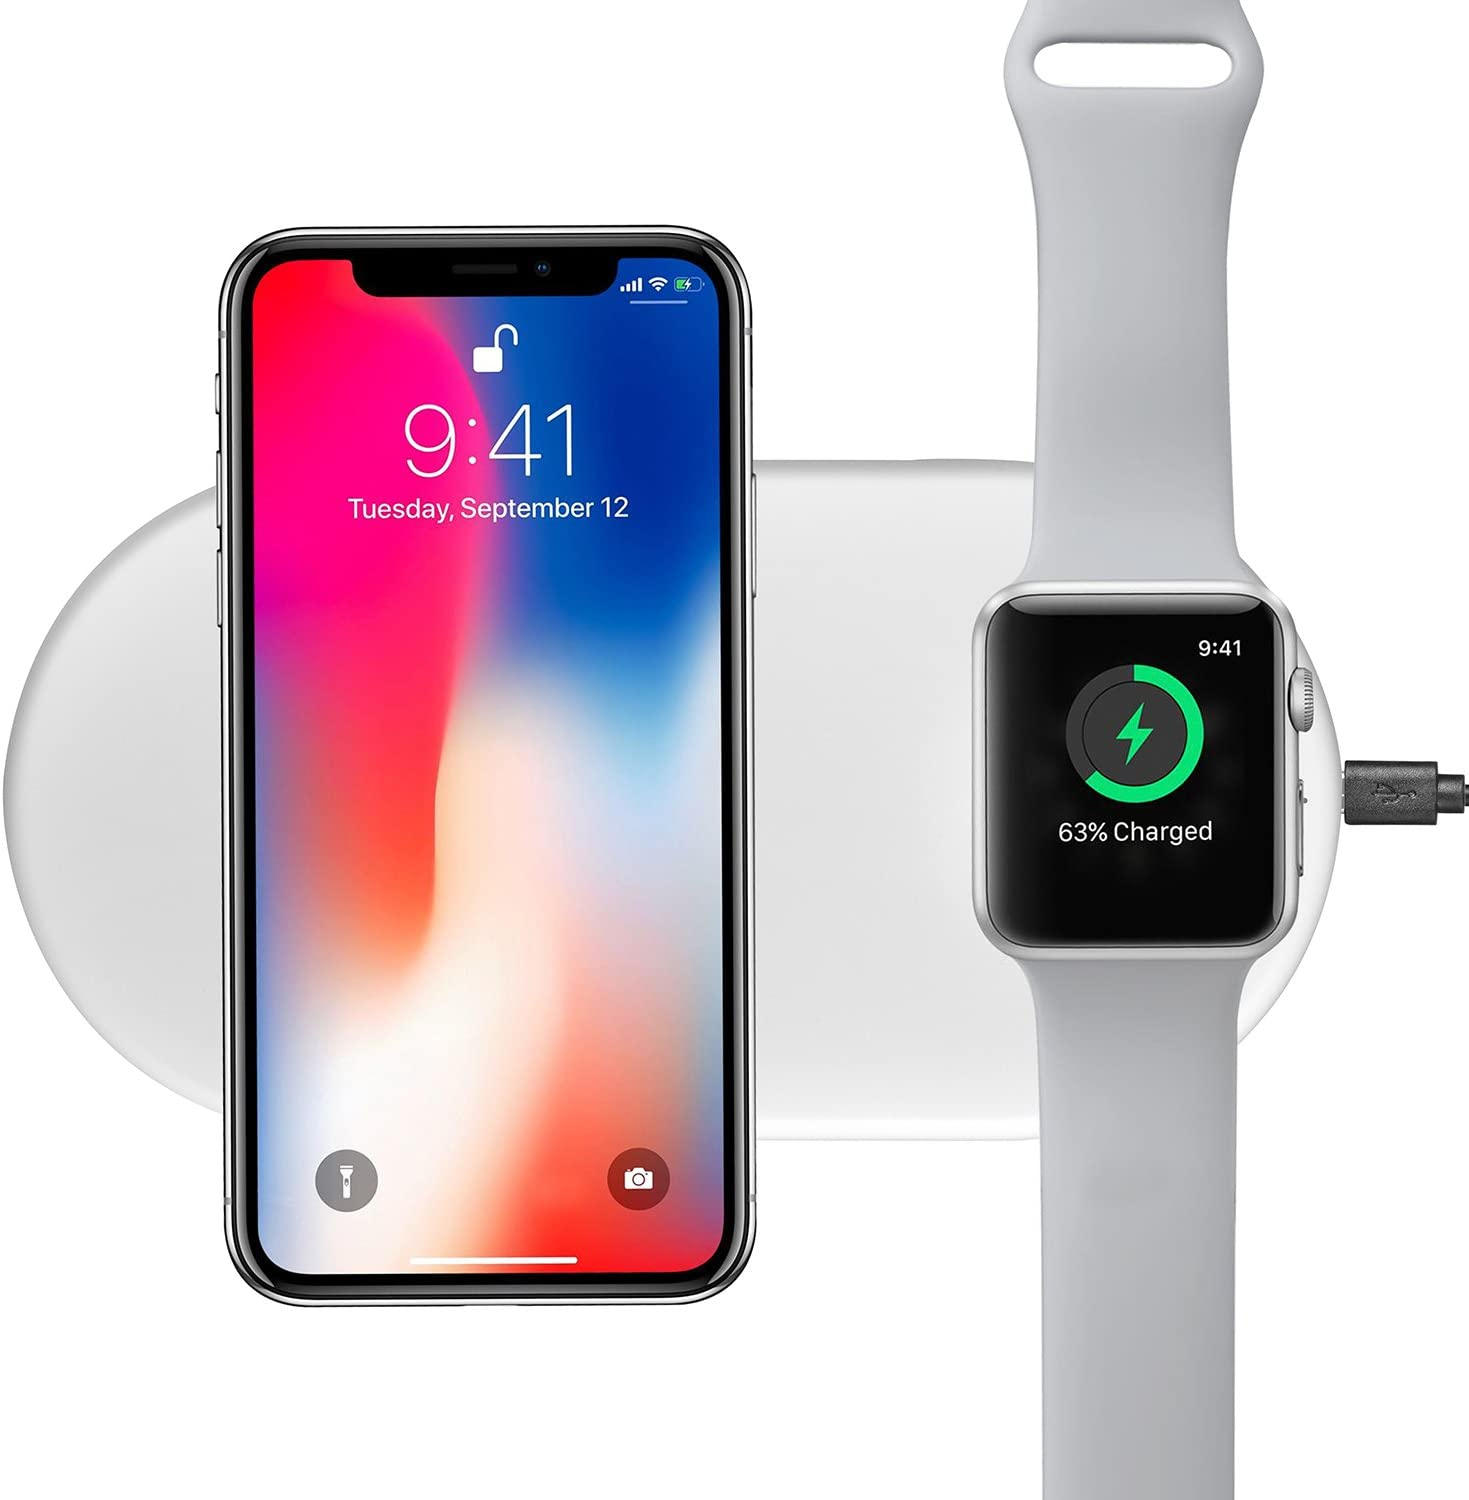 ORBMART Wireless Charger, 7.5W/10W Fast Wireless Charging Pad Compatible for iPhone X / 8/8 Plus, Samsung Galaxy S9/S8/S8 Plus/Note 8/Note 9, Apple Watch Series 3/2/1 (Pure White)